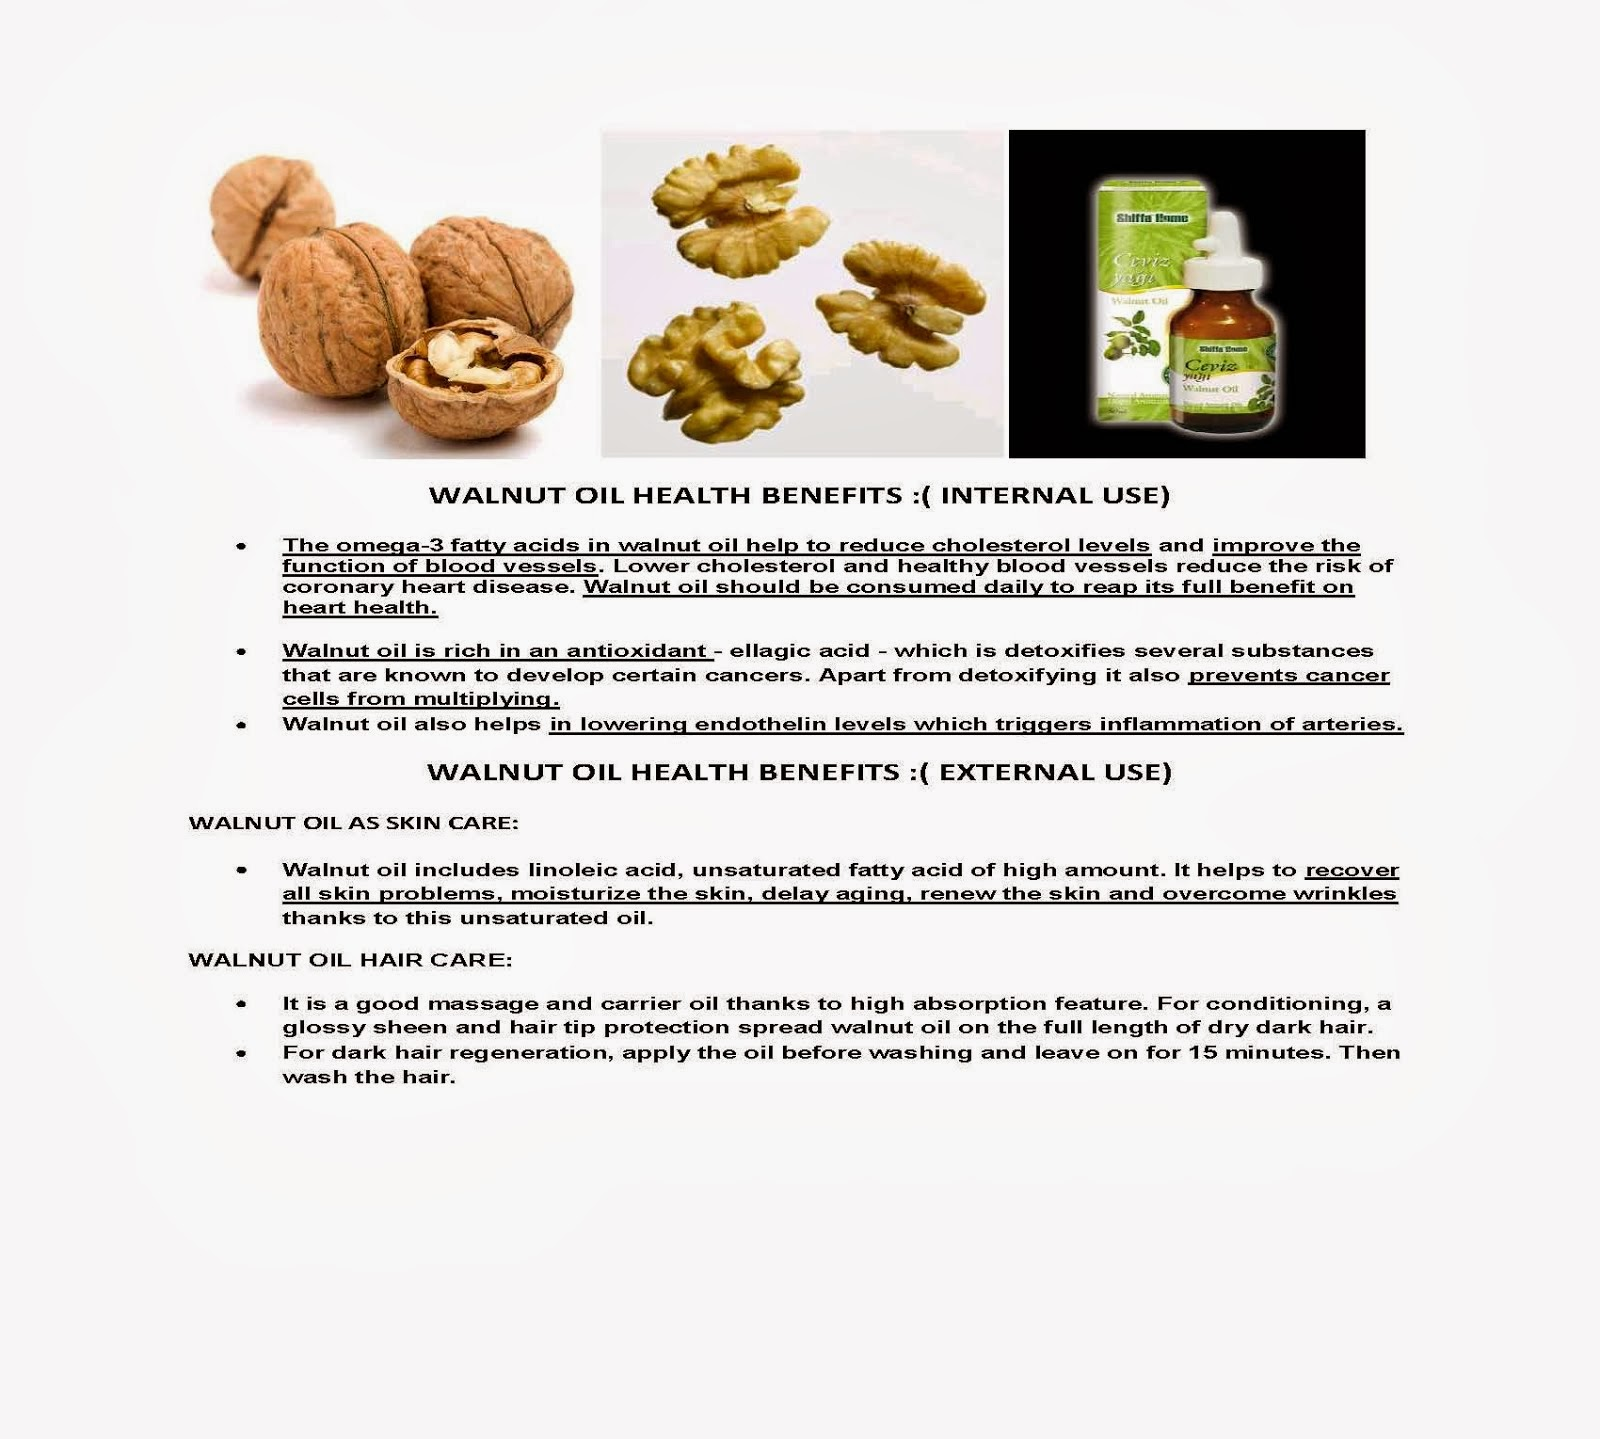 Walnut Oil Health